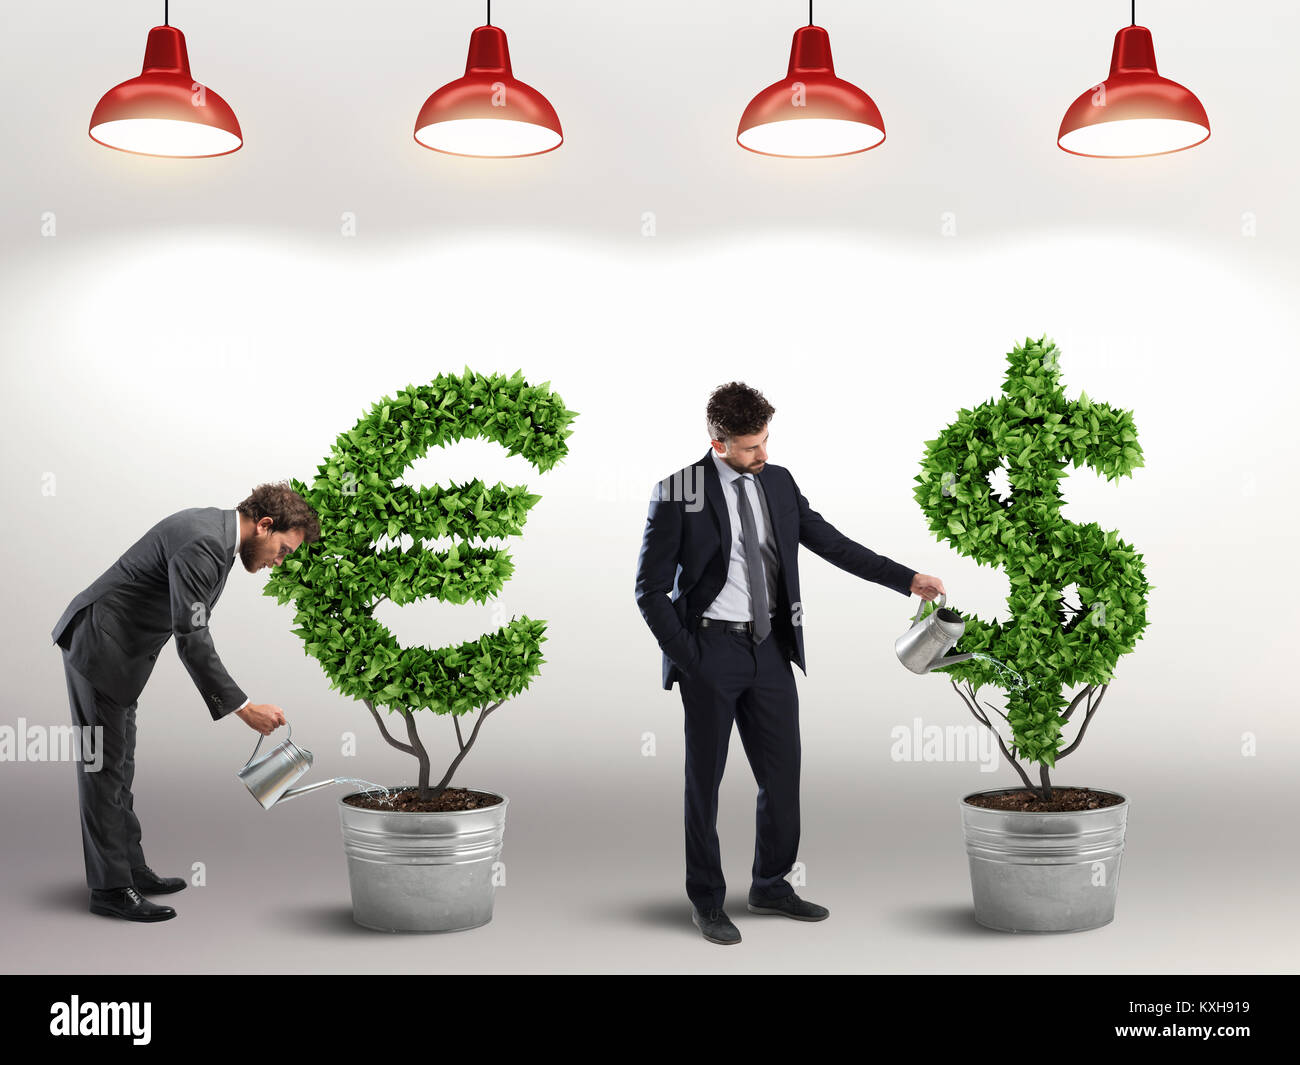 Make investments grow. 3D Rendering - Stock Image